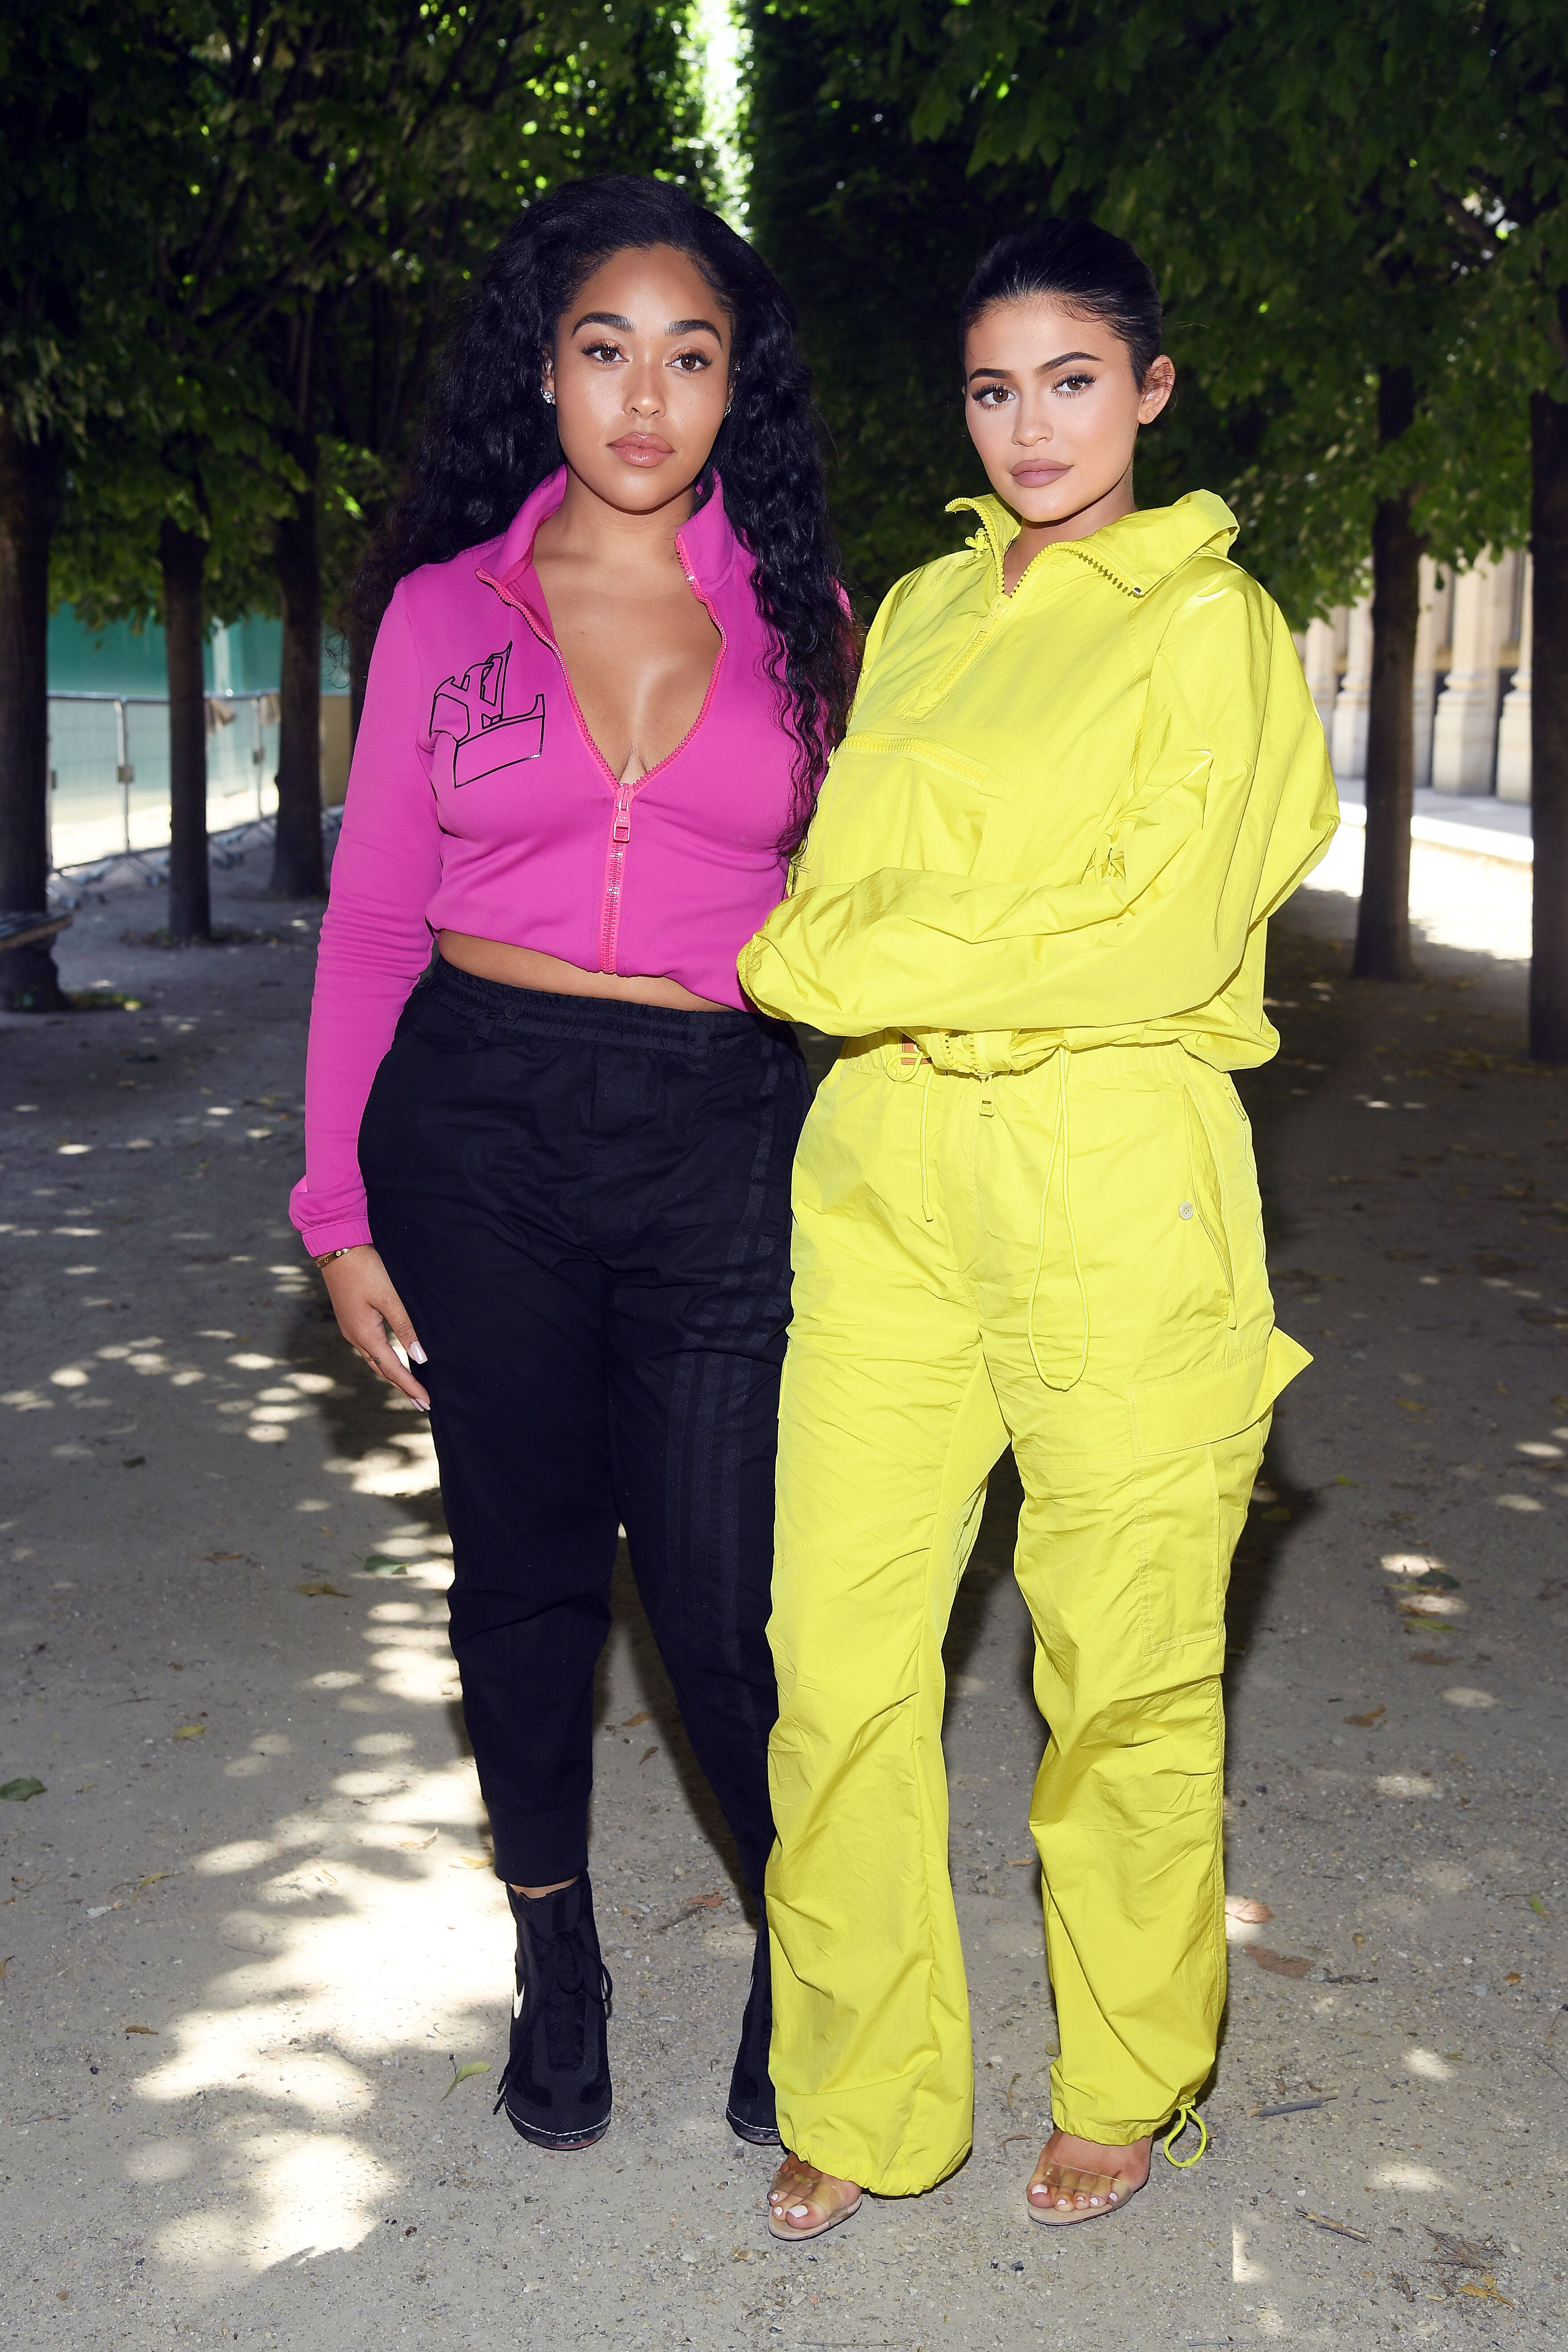 PARIS, FRANCE - JUNE 21: Jordyn Woods  and Kylie Jenner attend the Louis Vuitton Menswear Spring/Summer 2019 show as part of Paris Fashion Week on June 21, 2018 in Paris, France.  (Photo by Pascal Le Segretain/Getty Images)